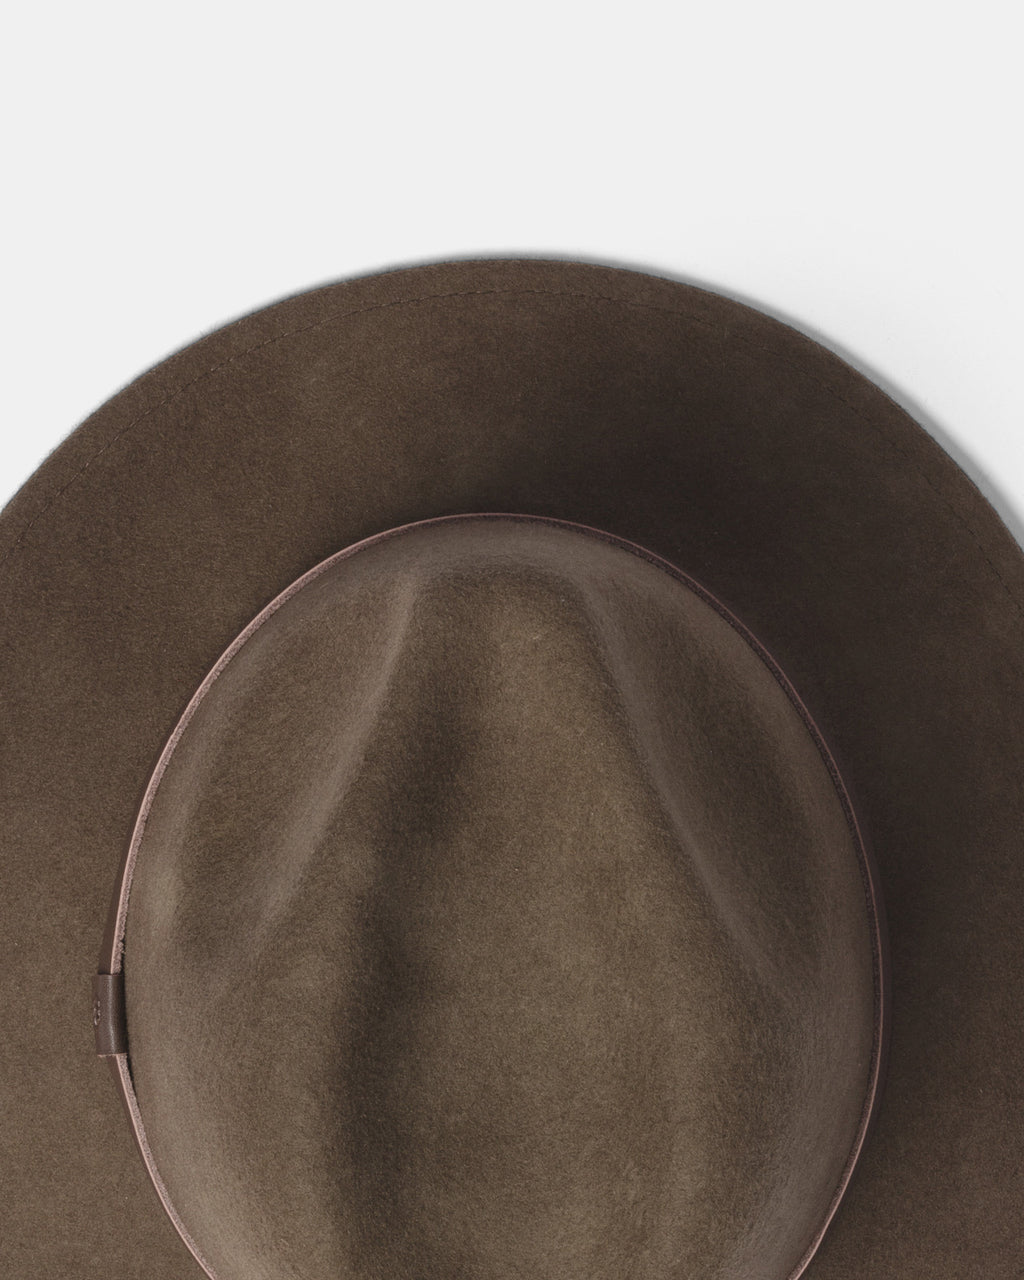 ... moulding to your head for the perfect fit – William will grow with you.  The brim can be shaped to sit up or down. Also available in Black. 3997a8fa03b